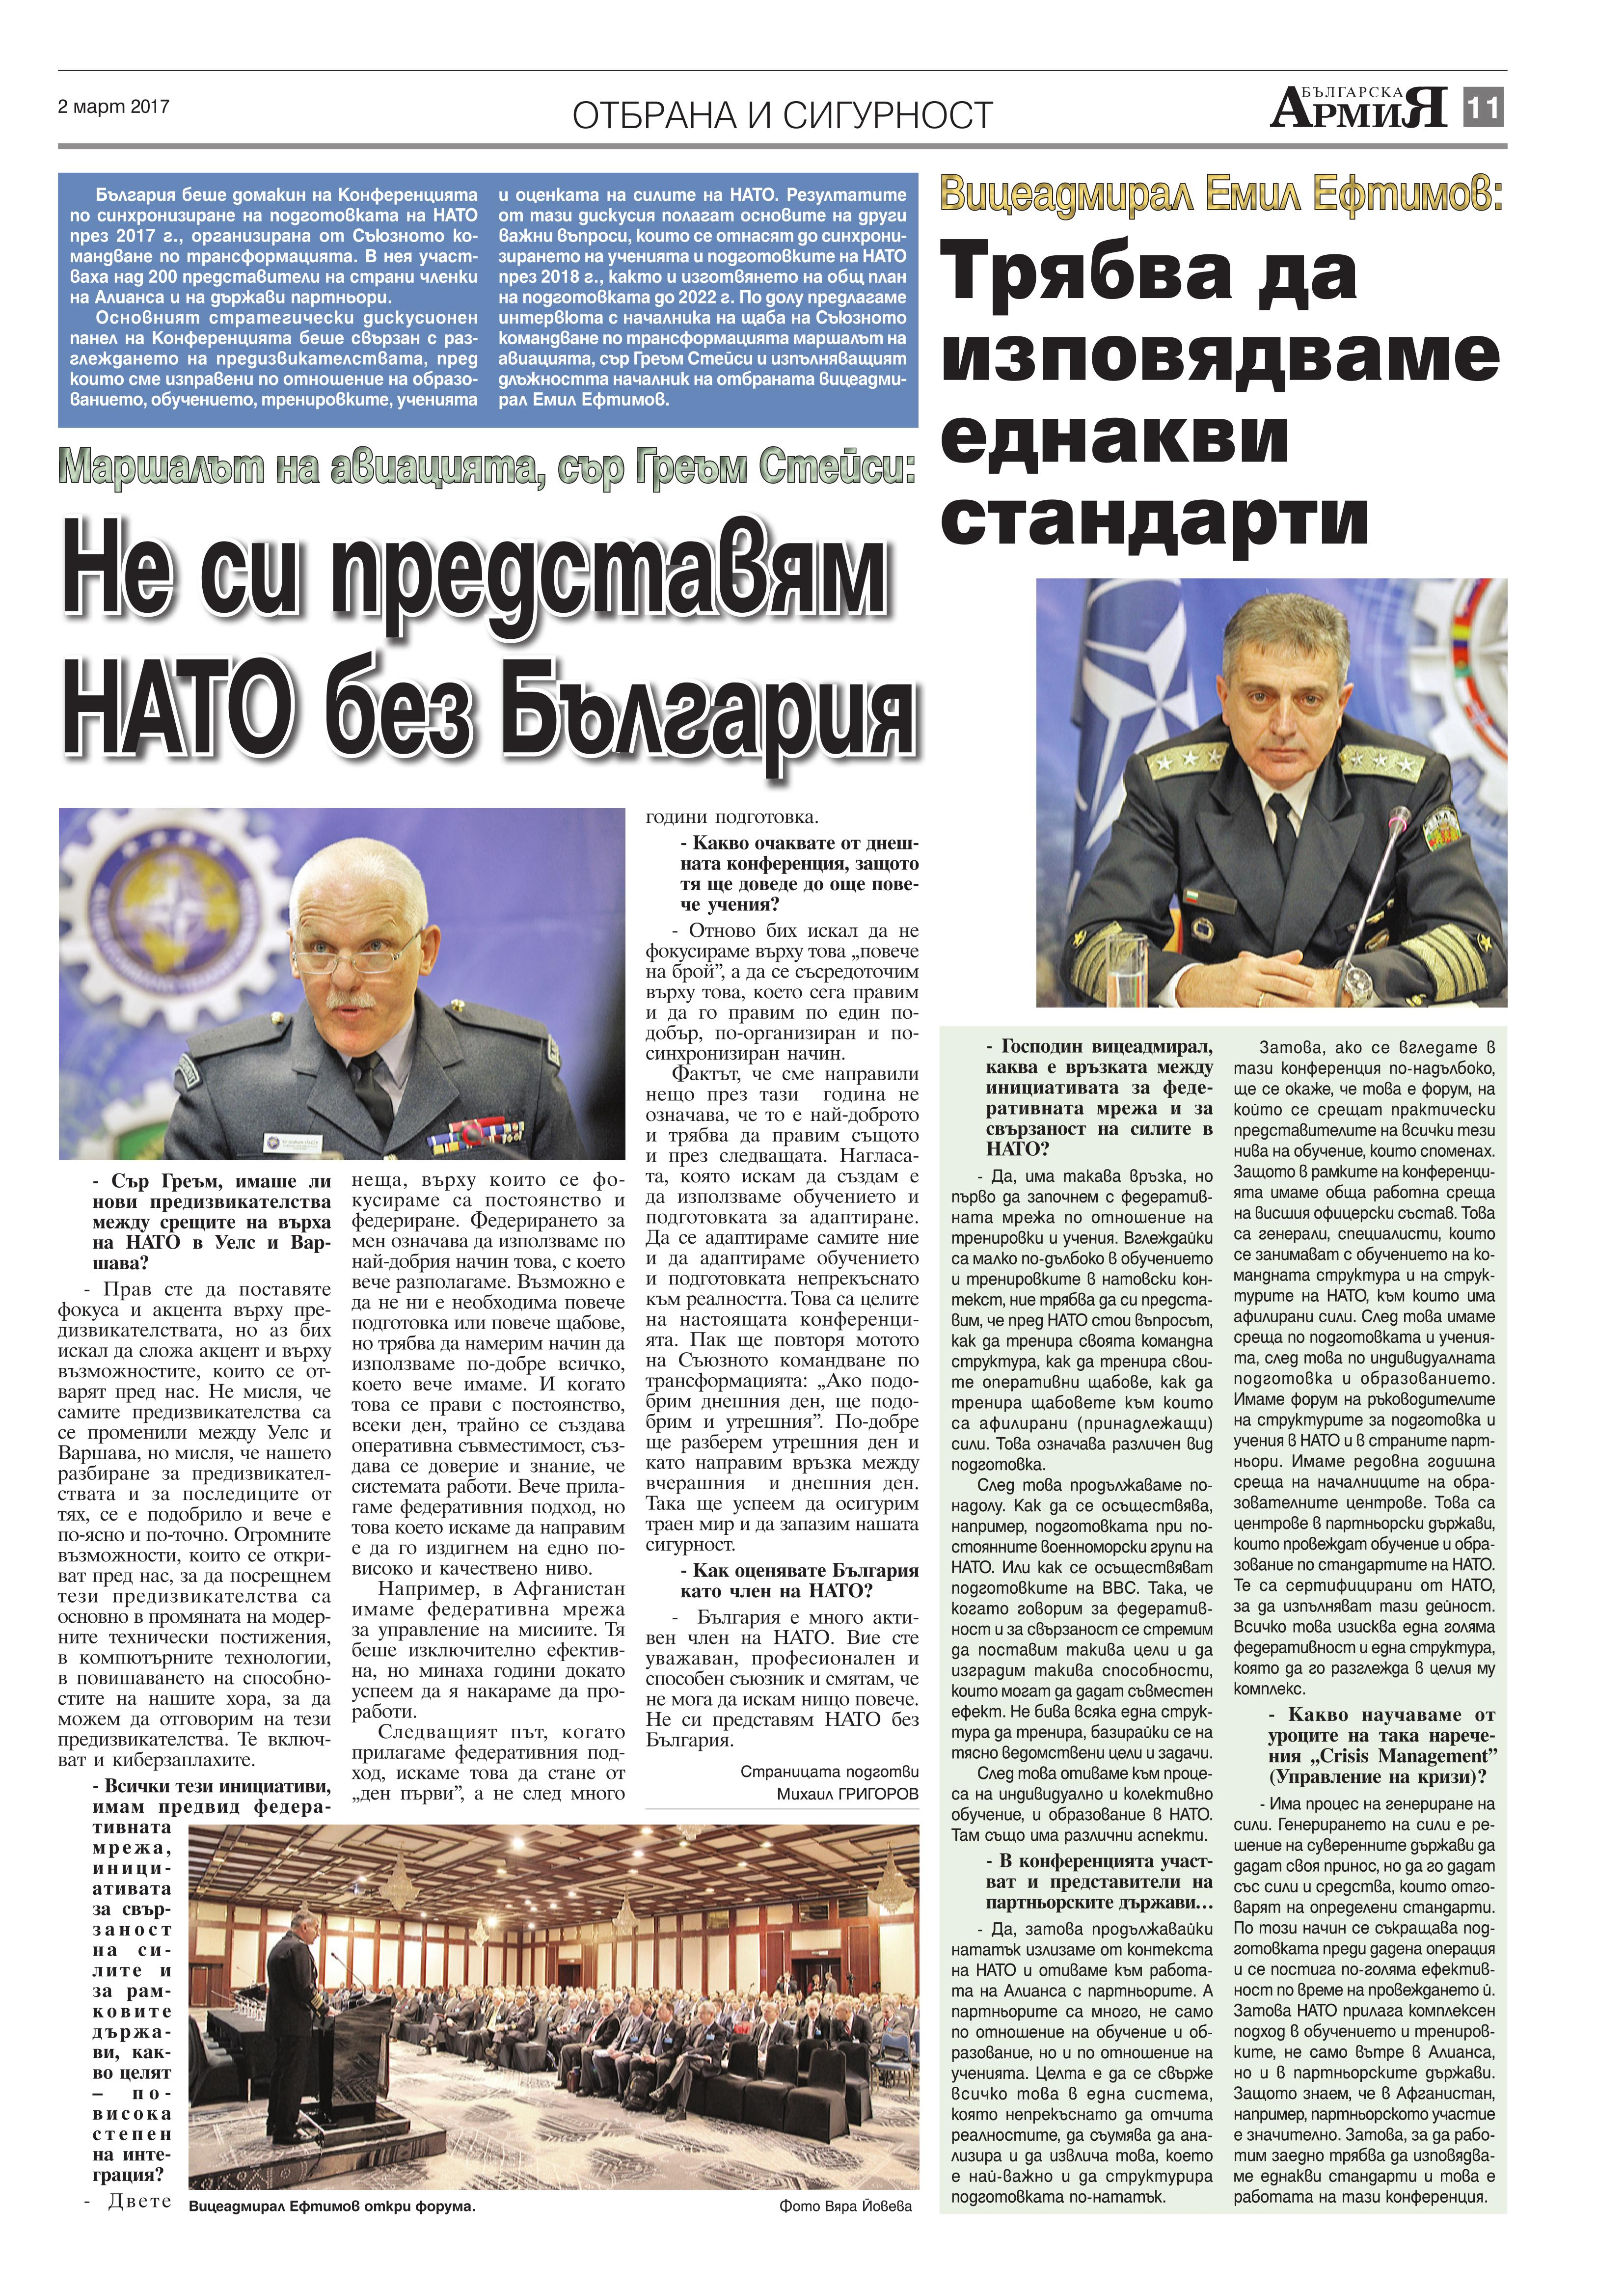 https://www.armymedia.bg/wp-content/uploads/2015/06/11.page1_-15.jpg